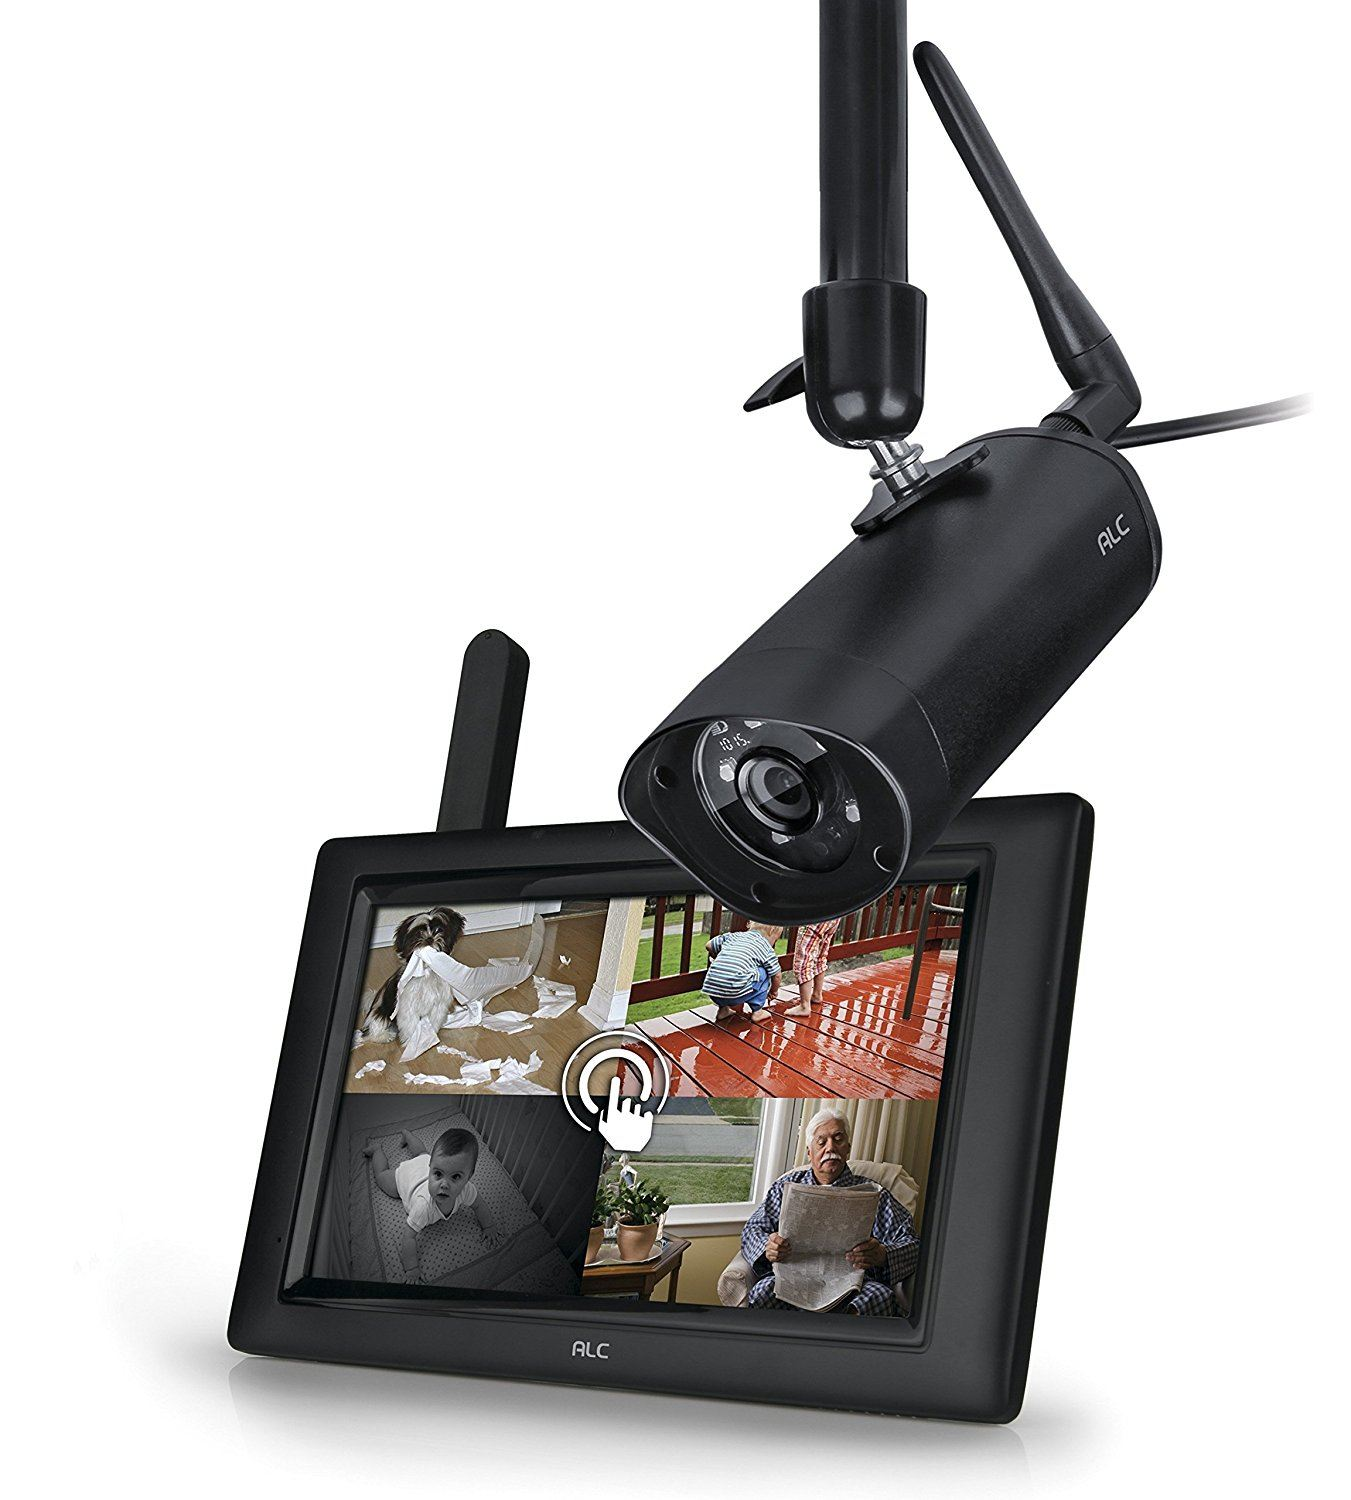 Diy Home Security Cameras Reviews Best Diy Security Camera System Guide And Reviews